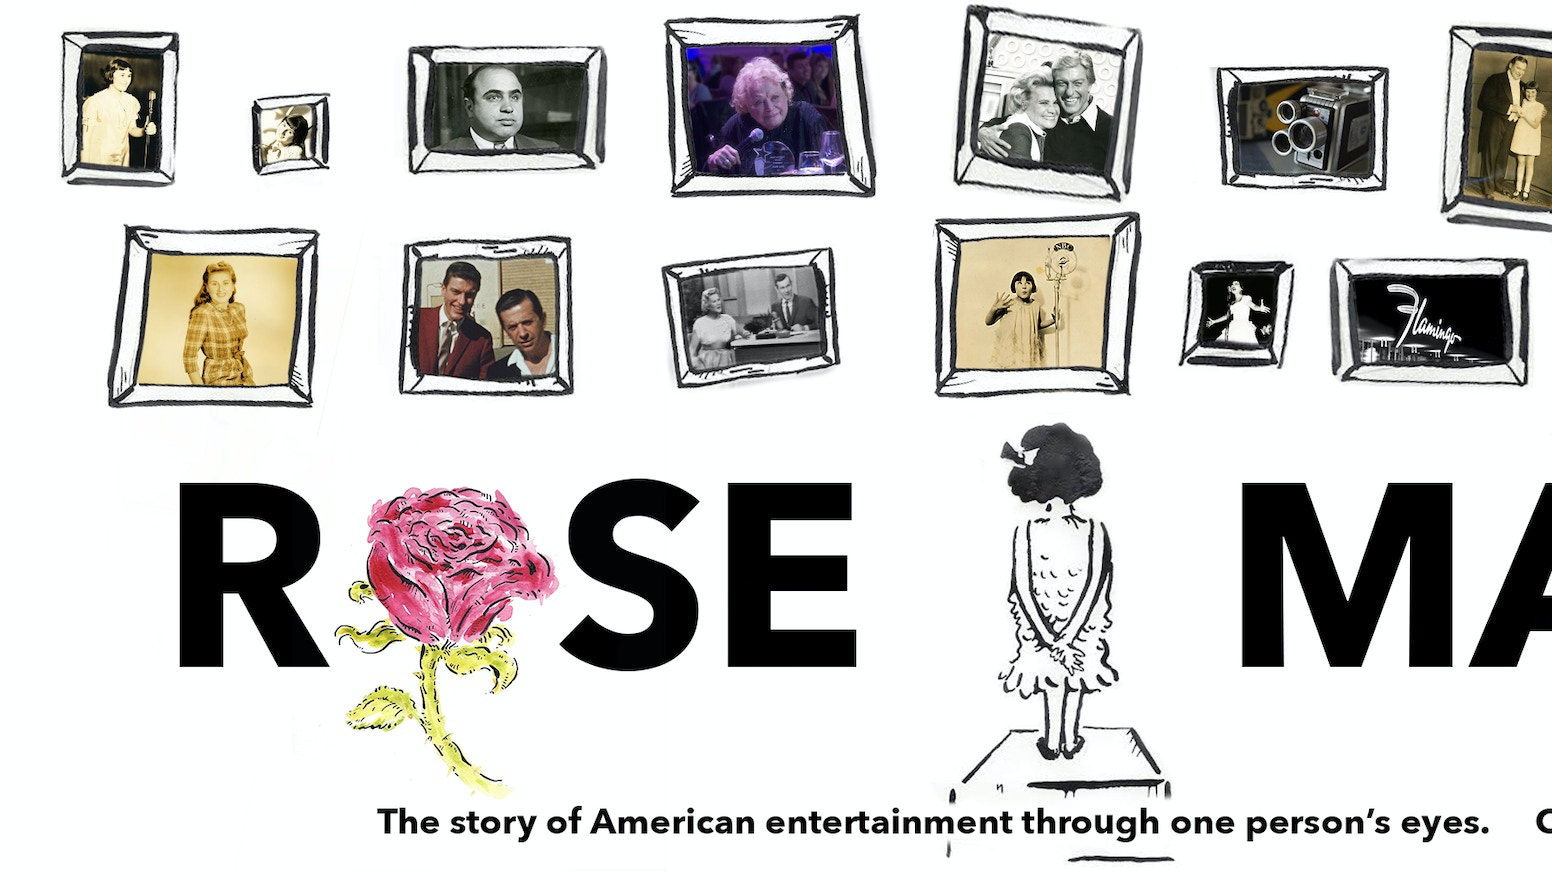 Rose Marie, the untold story of fame, love, tragedy & 90 years of American entertainment through the eyes of the woman who did it all. Visit rosemariemovie.com to donate and pick up some of our rewards.